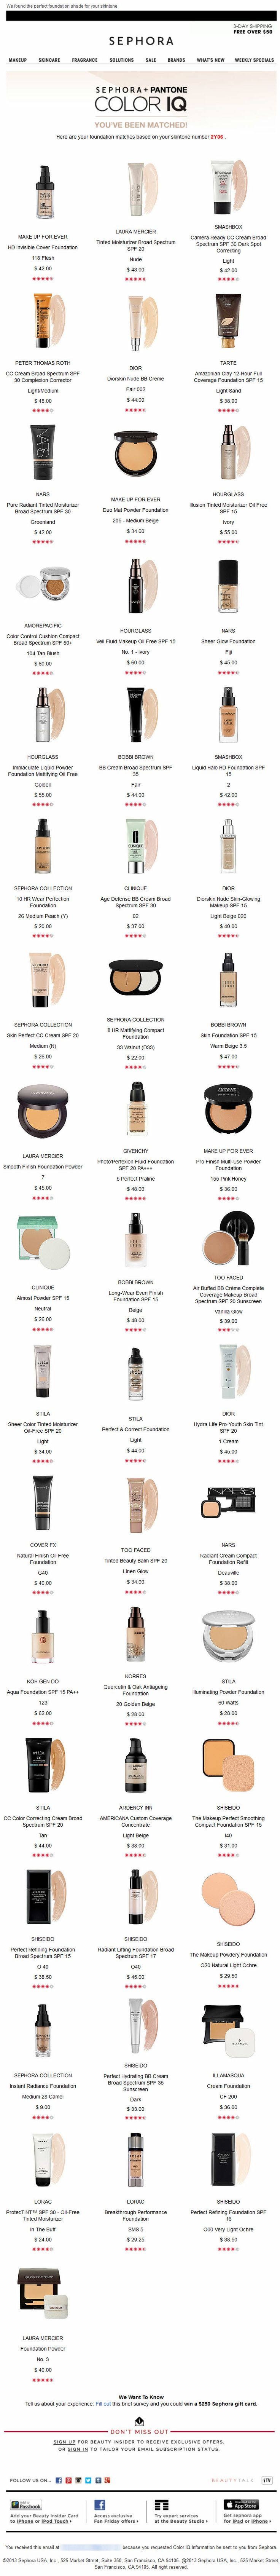 Sephora >> sent 2/2014 >> Your Foundation Matches >> While visiting a Sephora store in the U.S., I used their Color IQ technology to figure out which foundations would match my specific skin tone number. I was able to scroll through the foundation options in-store on their iPad, and send this email to myself for future reference. A very clever service email that I'll surely open many times. —Lindsey O'Donnell, Design Consultant, Australia, Salesforce ExactTarget Marketing Cloud